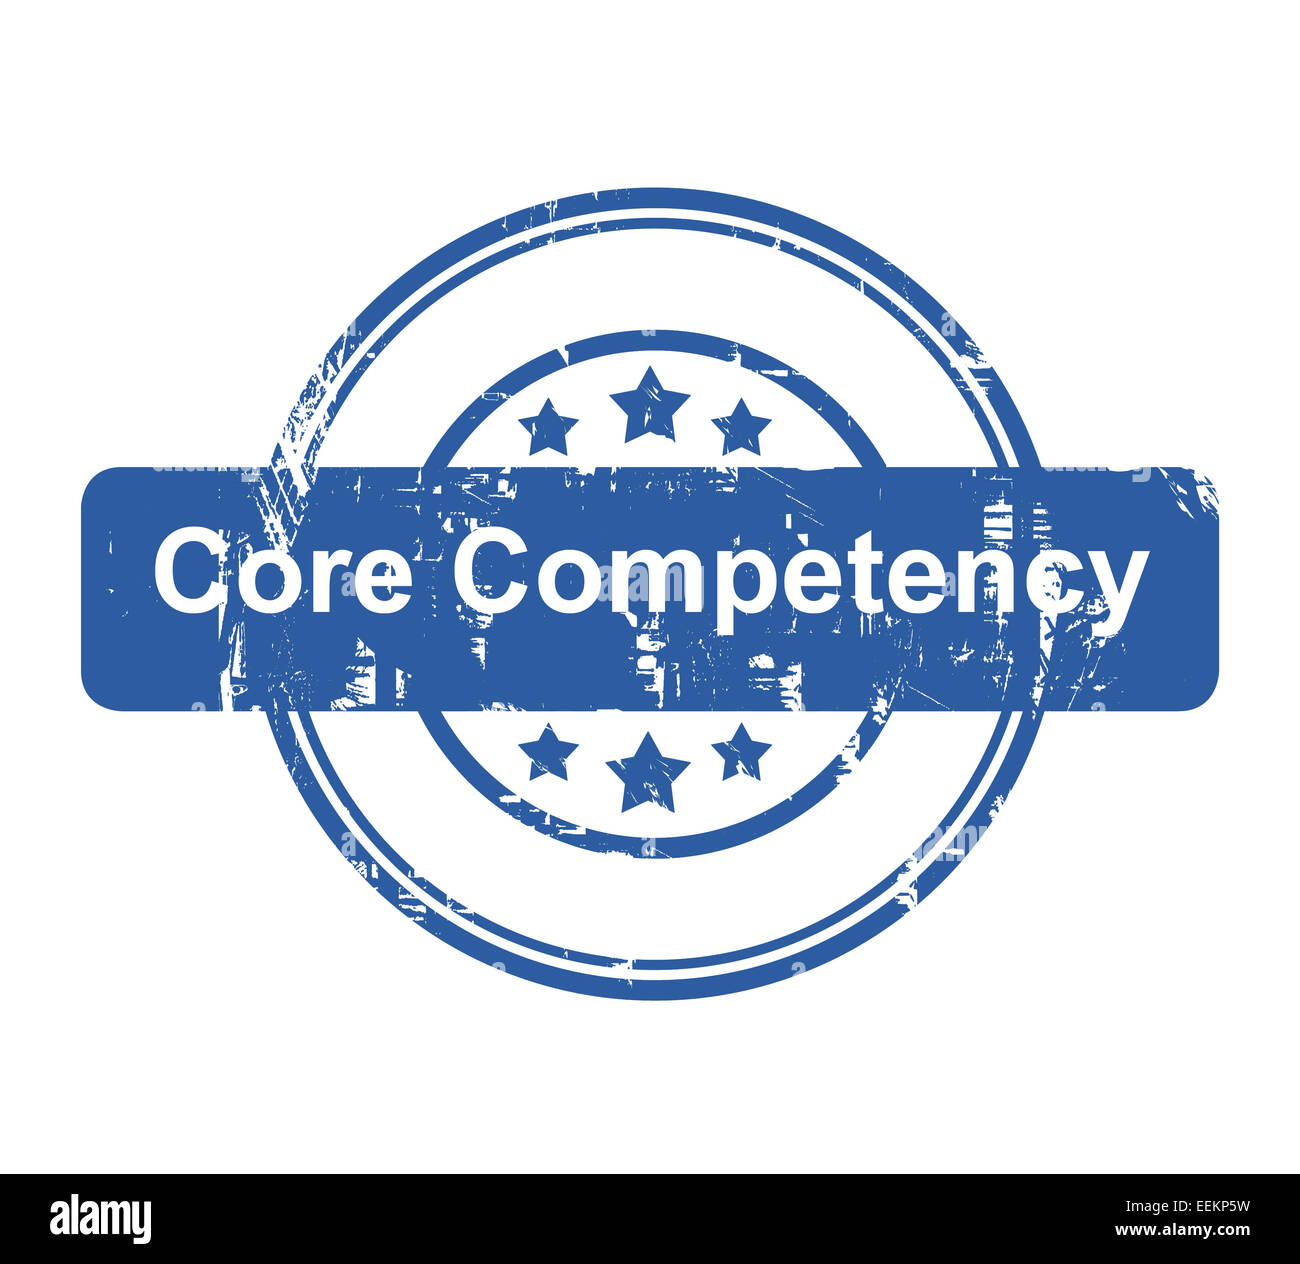 Core competency business concept stamp with stars isolated on a white background. - Stock Image